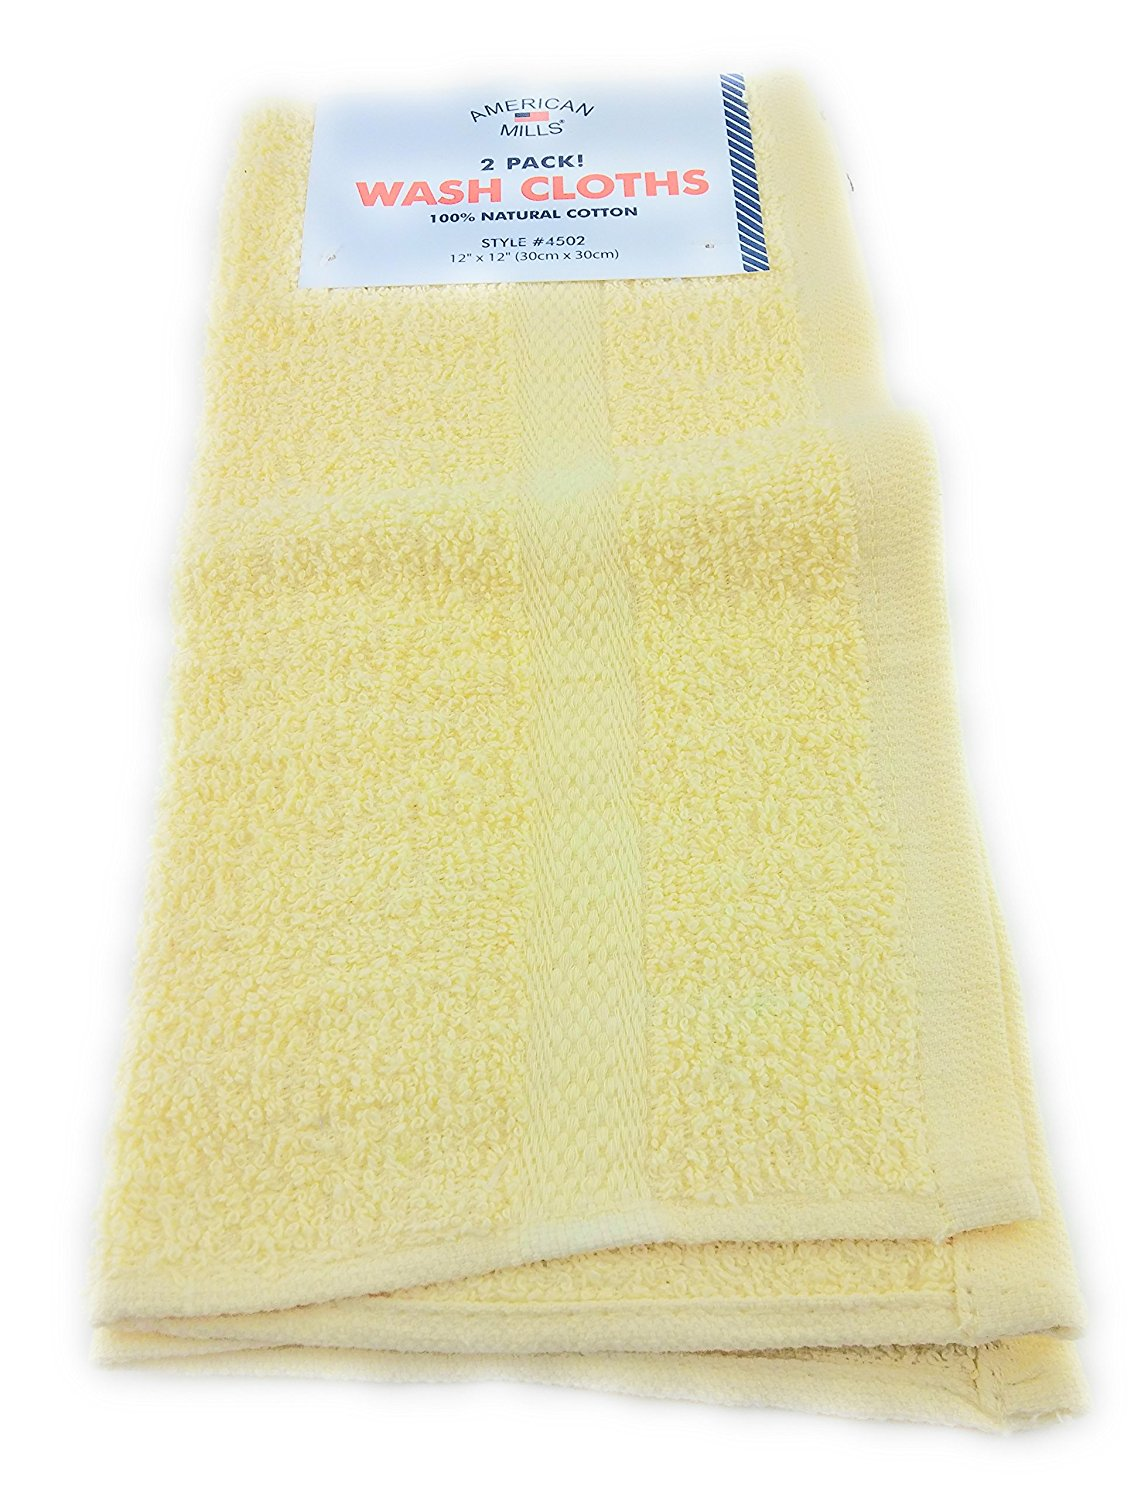 2 pack American Mills Deluxe Cotton Wash Cloth (Yellow)